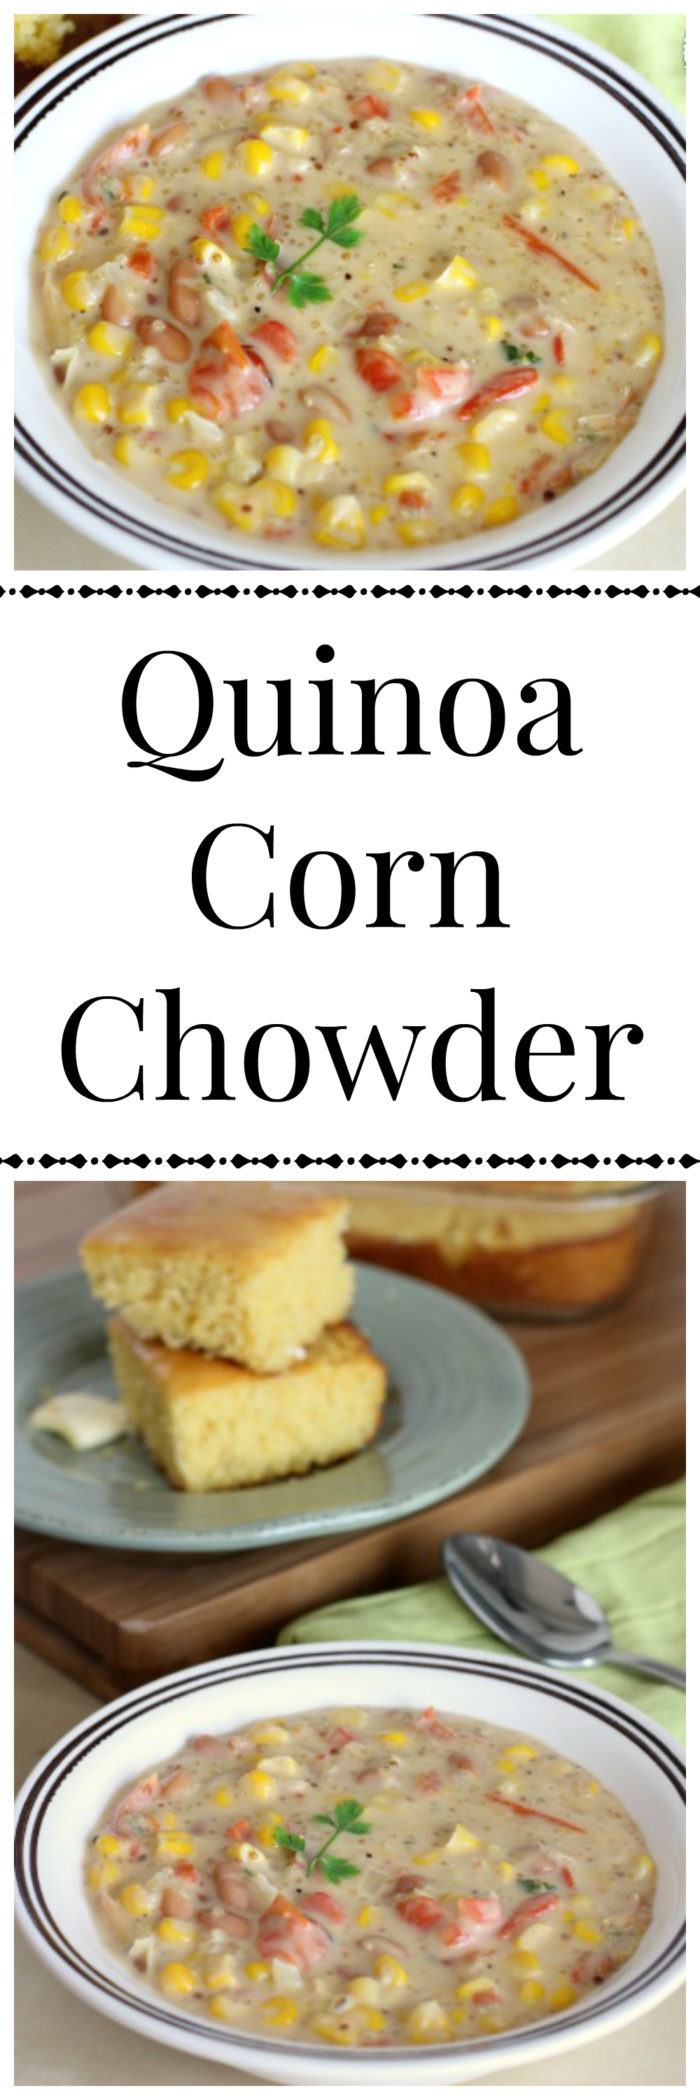 Quinoa Corn Chowder on www.cookingwithruthie.com will warm your hearts, minds, and spirits this winter.